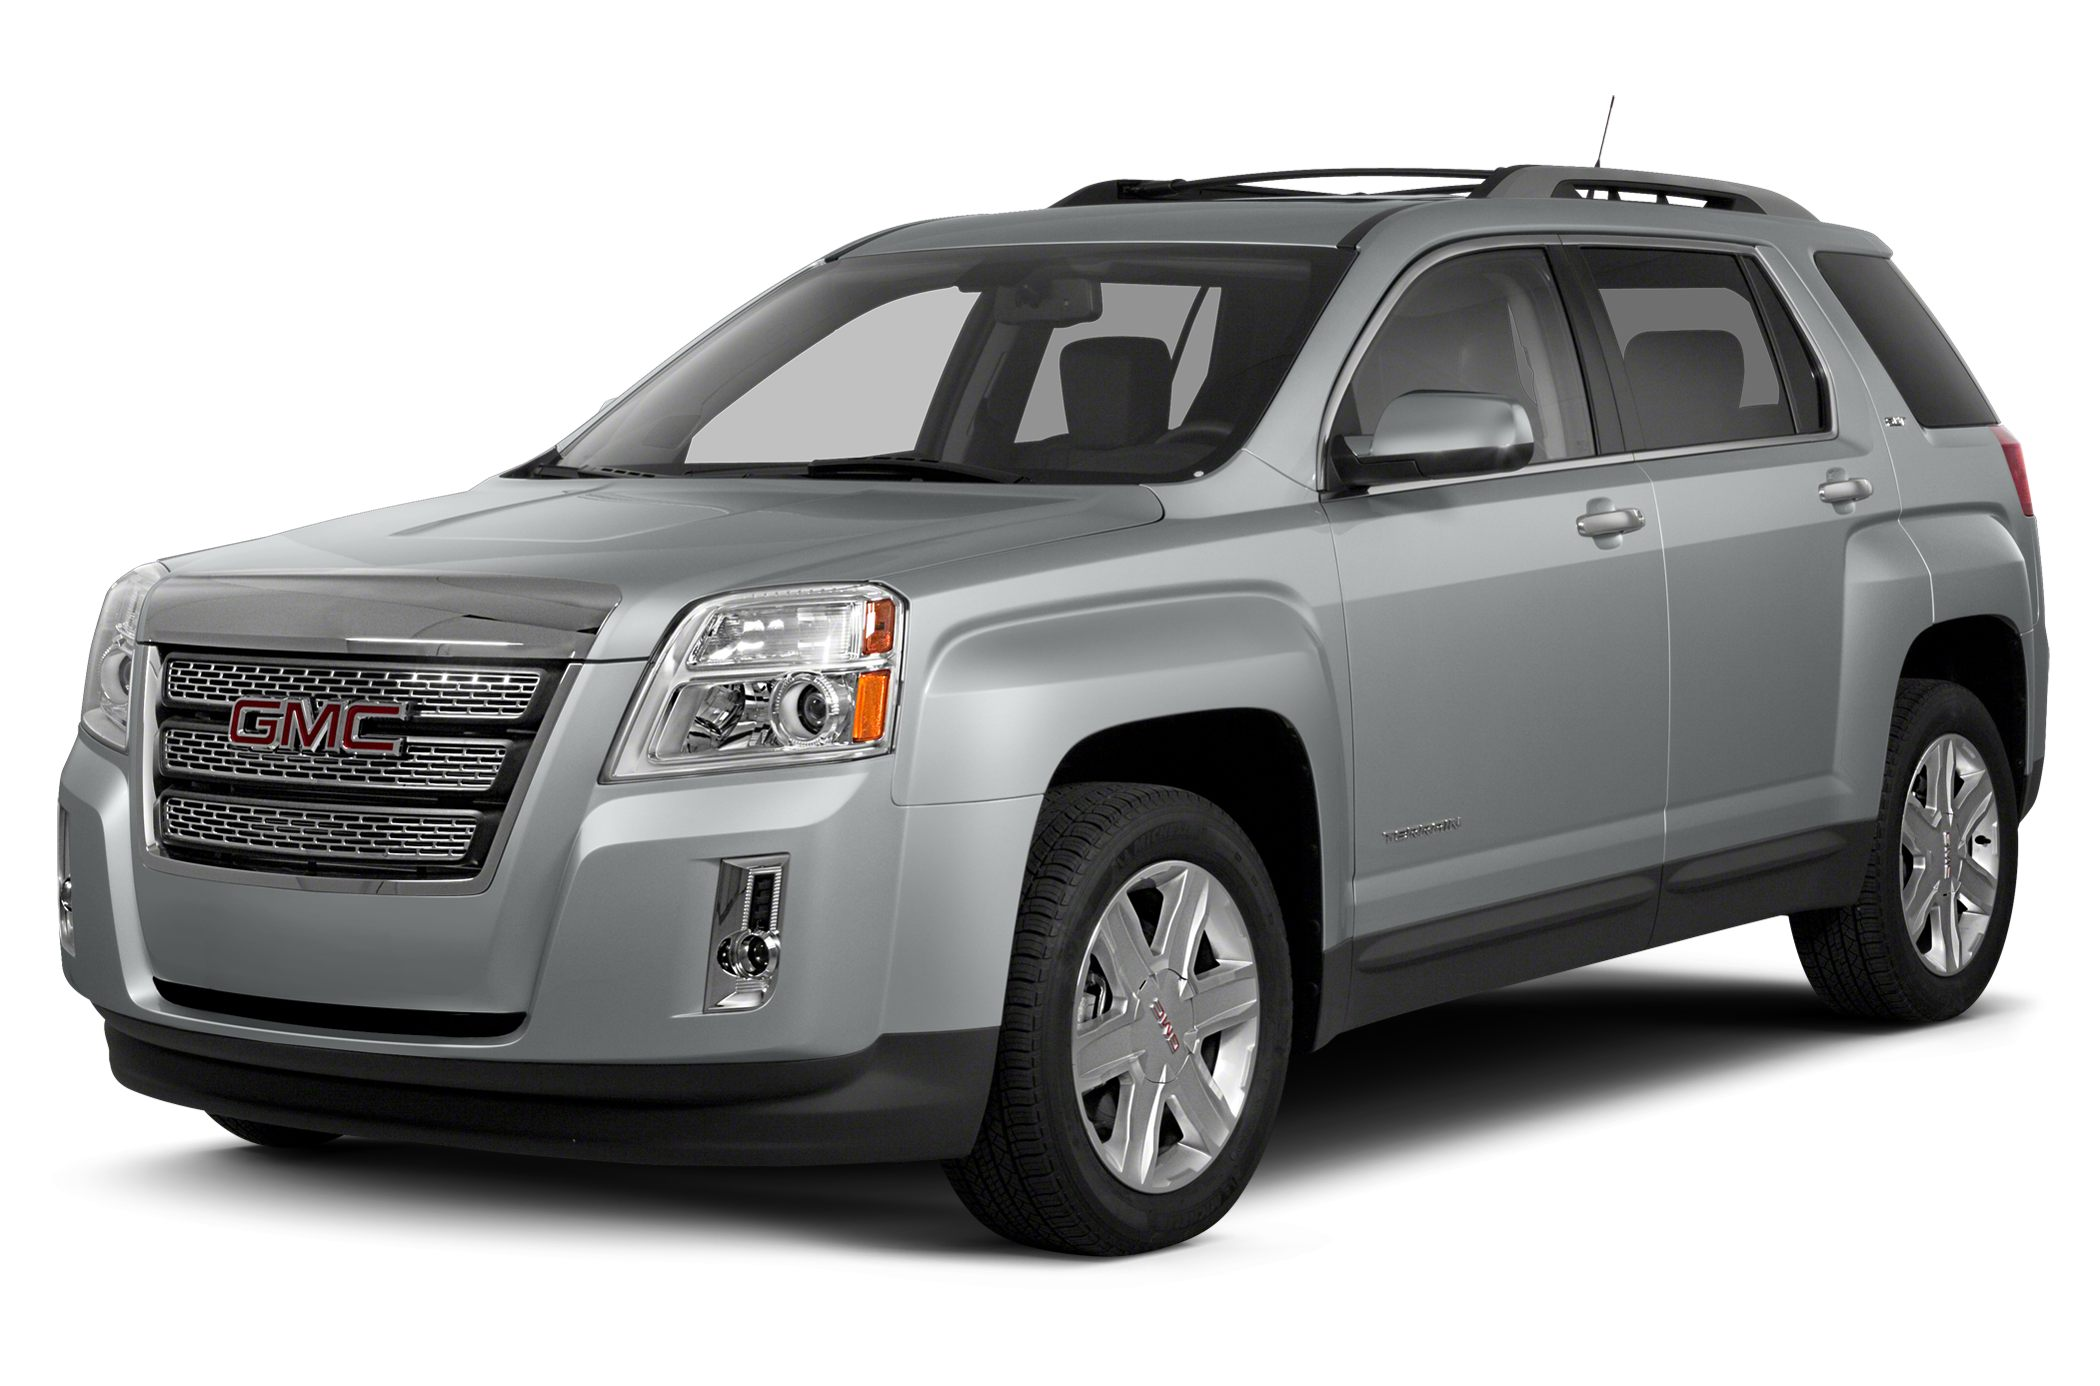 2013 GMC Terrain SLE-2 SUV for sale in El Paso for $21,982 with 22,817 miles